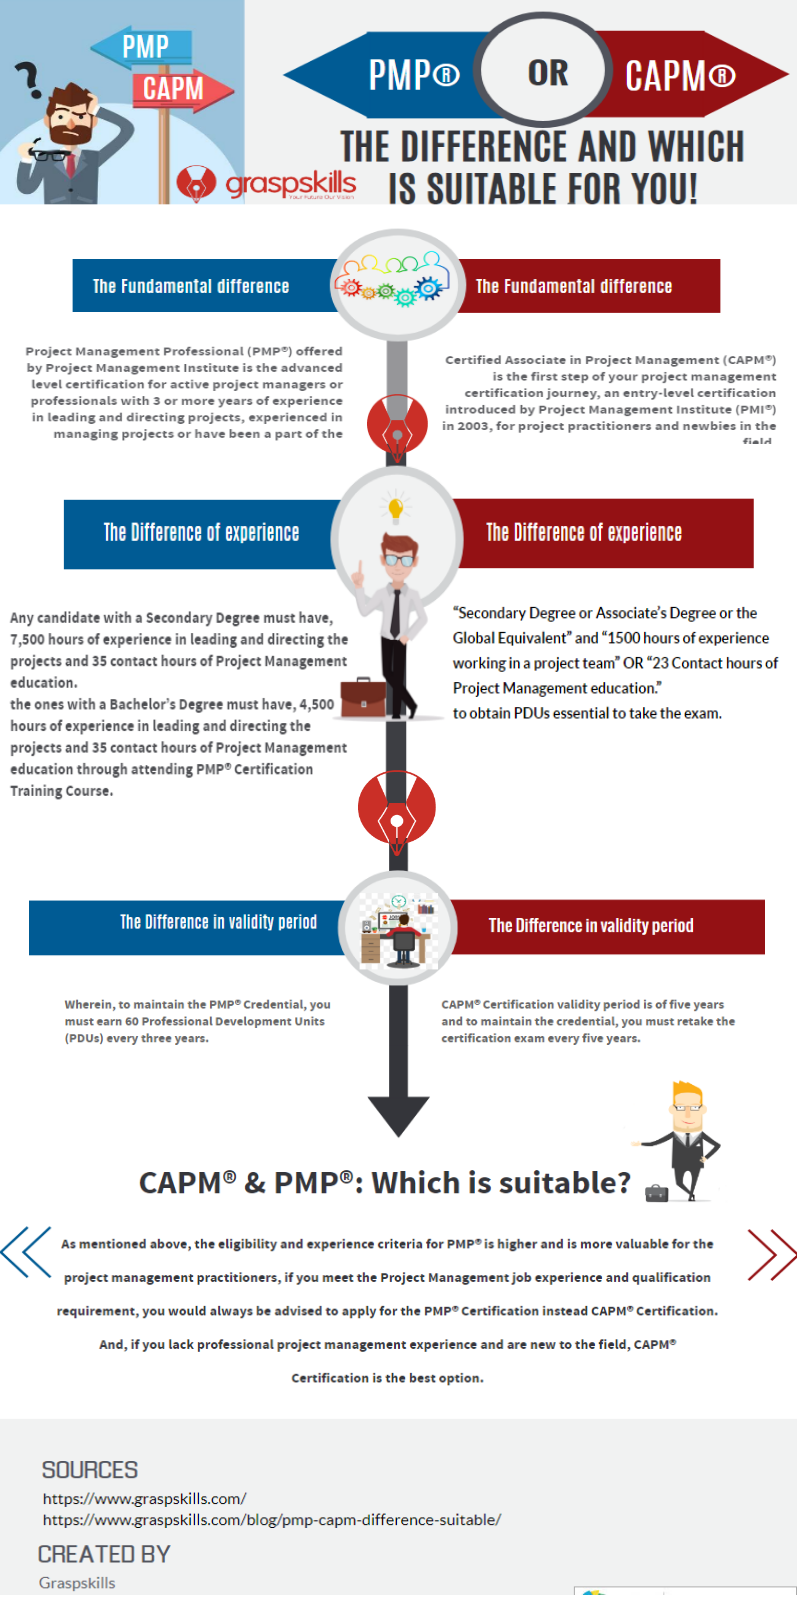 Pmp Or Capm The Difference And Which Is Suitable For You